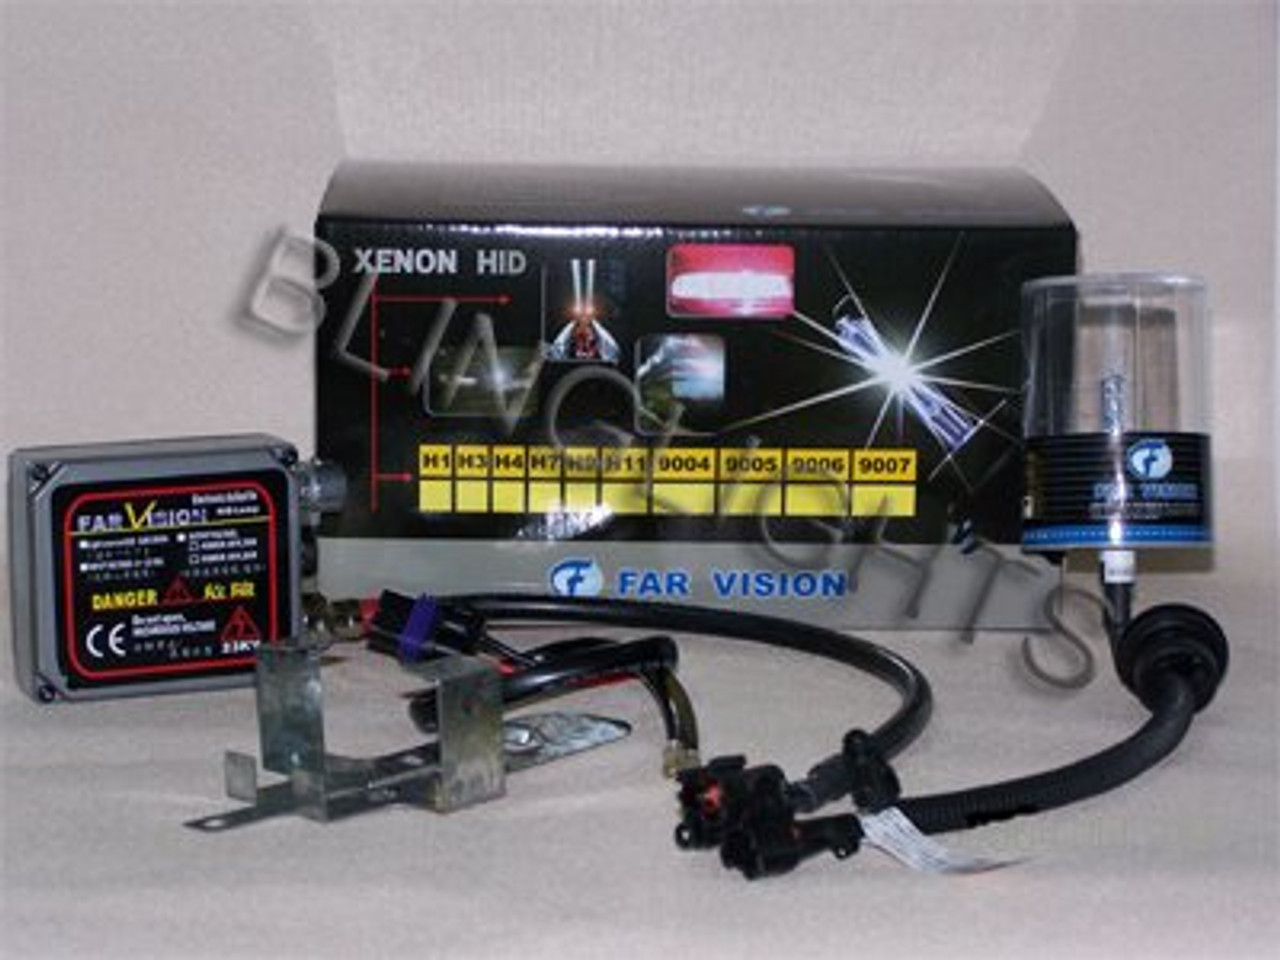 2004 2005 2006 2007 2008 chrysler crossfire xenon 55 watts hid headlamps headlights conversion kit [ 1280 x 960 Pixel ]